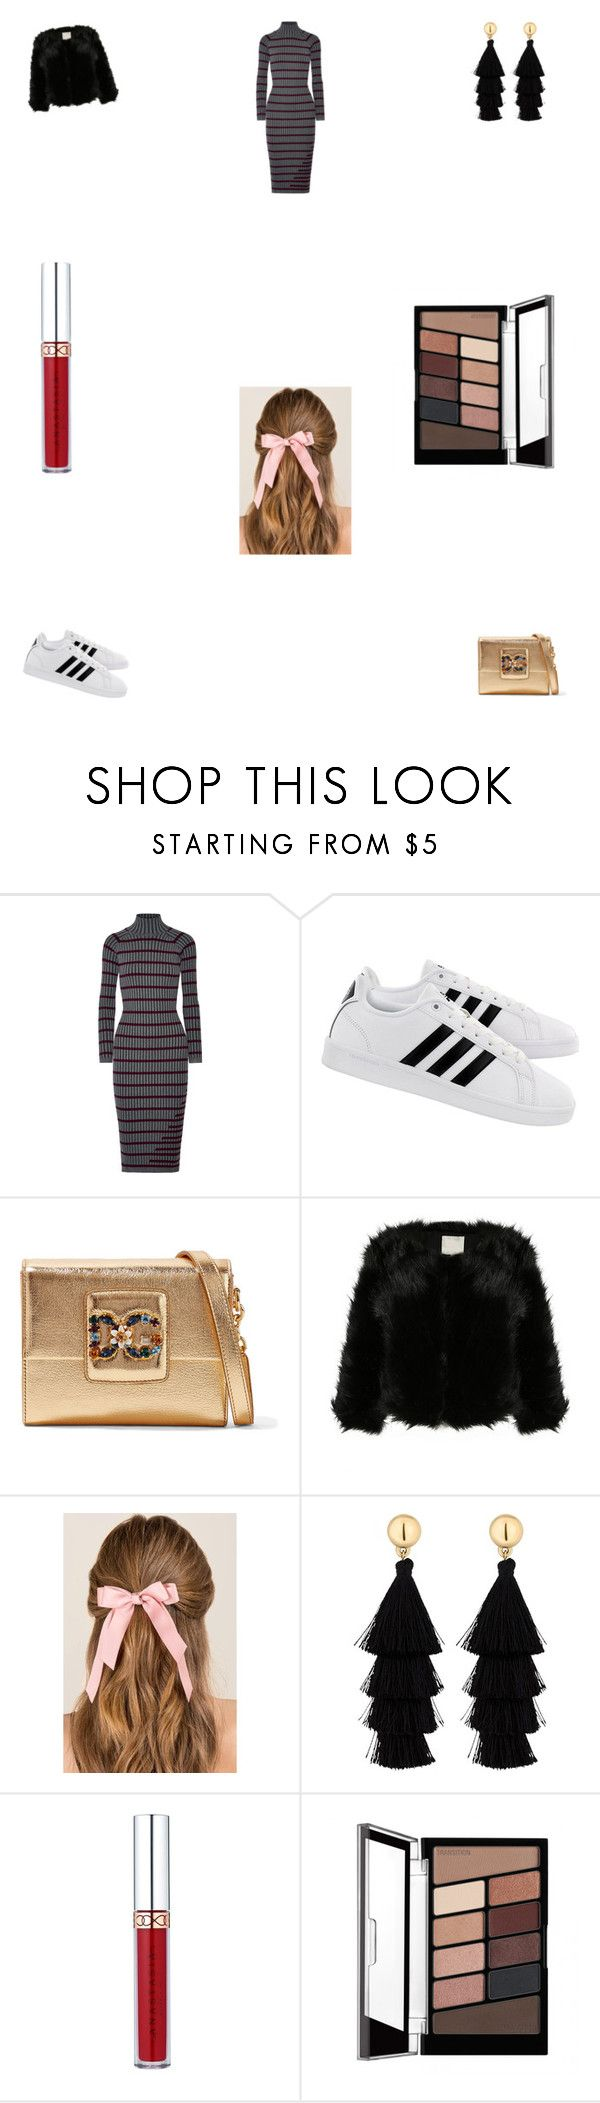 """Untitled #3636"" by fatmasuroor ❤ liked on Polyvore featuring T By Alexander Wang, adidas, Dolce&Gabbana, Francesca's, Red Herring and Anastasia Beverly Hills"